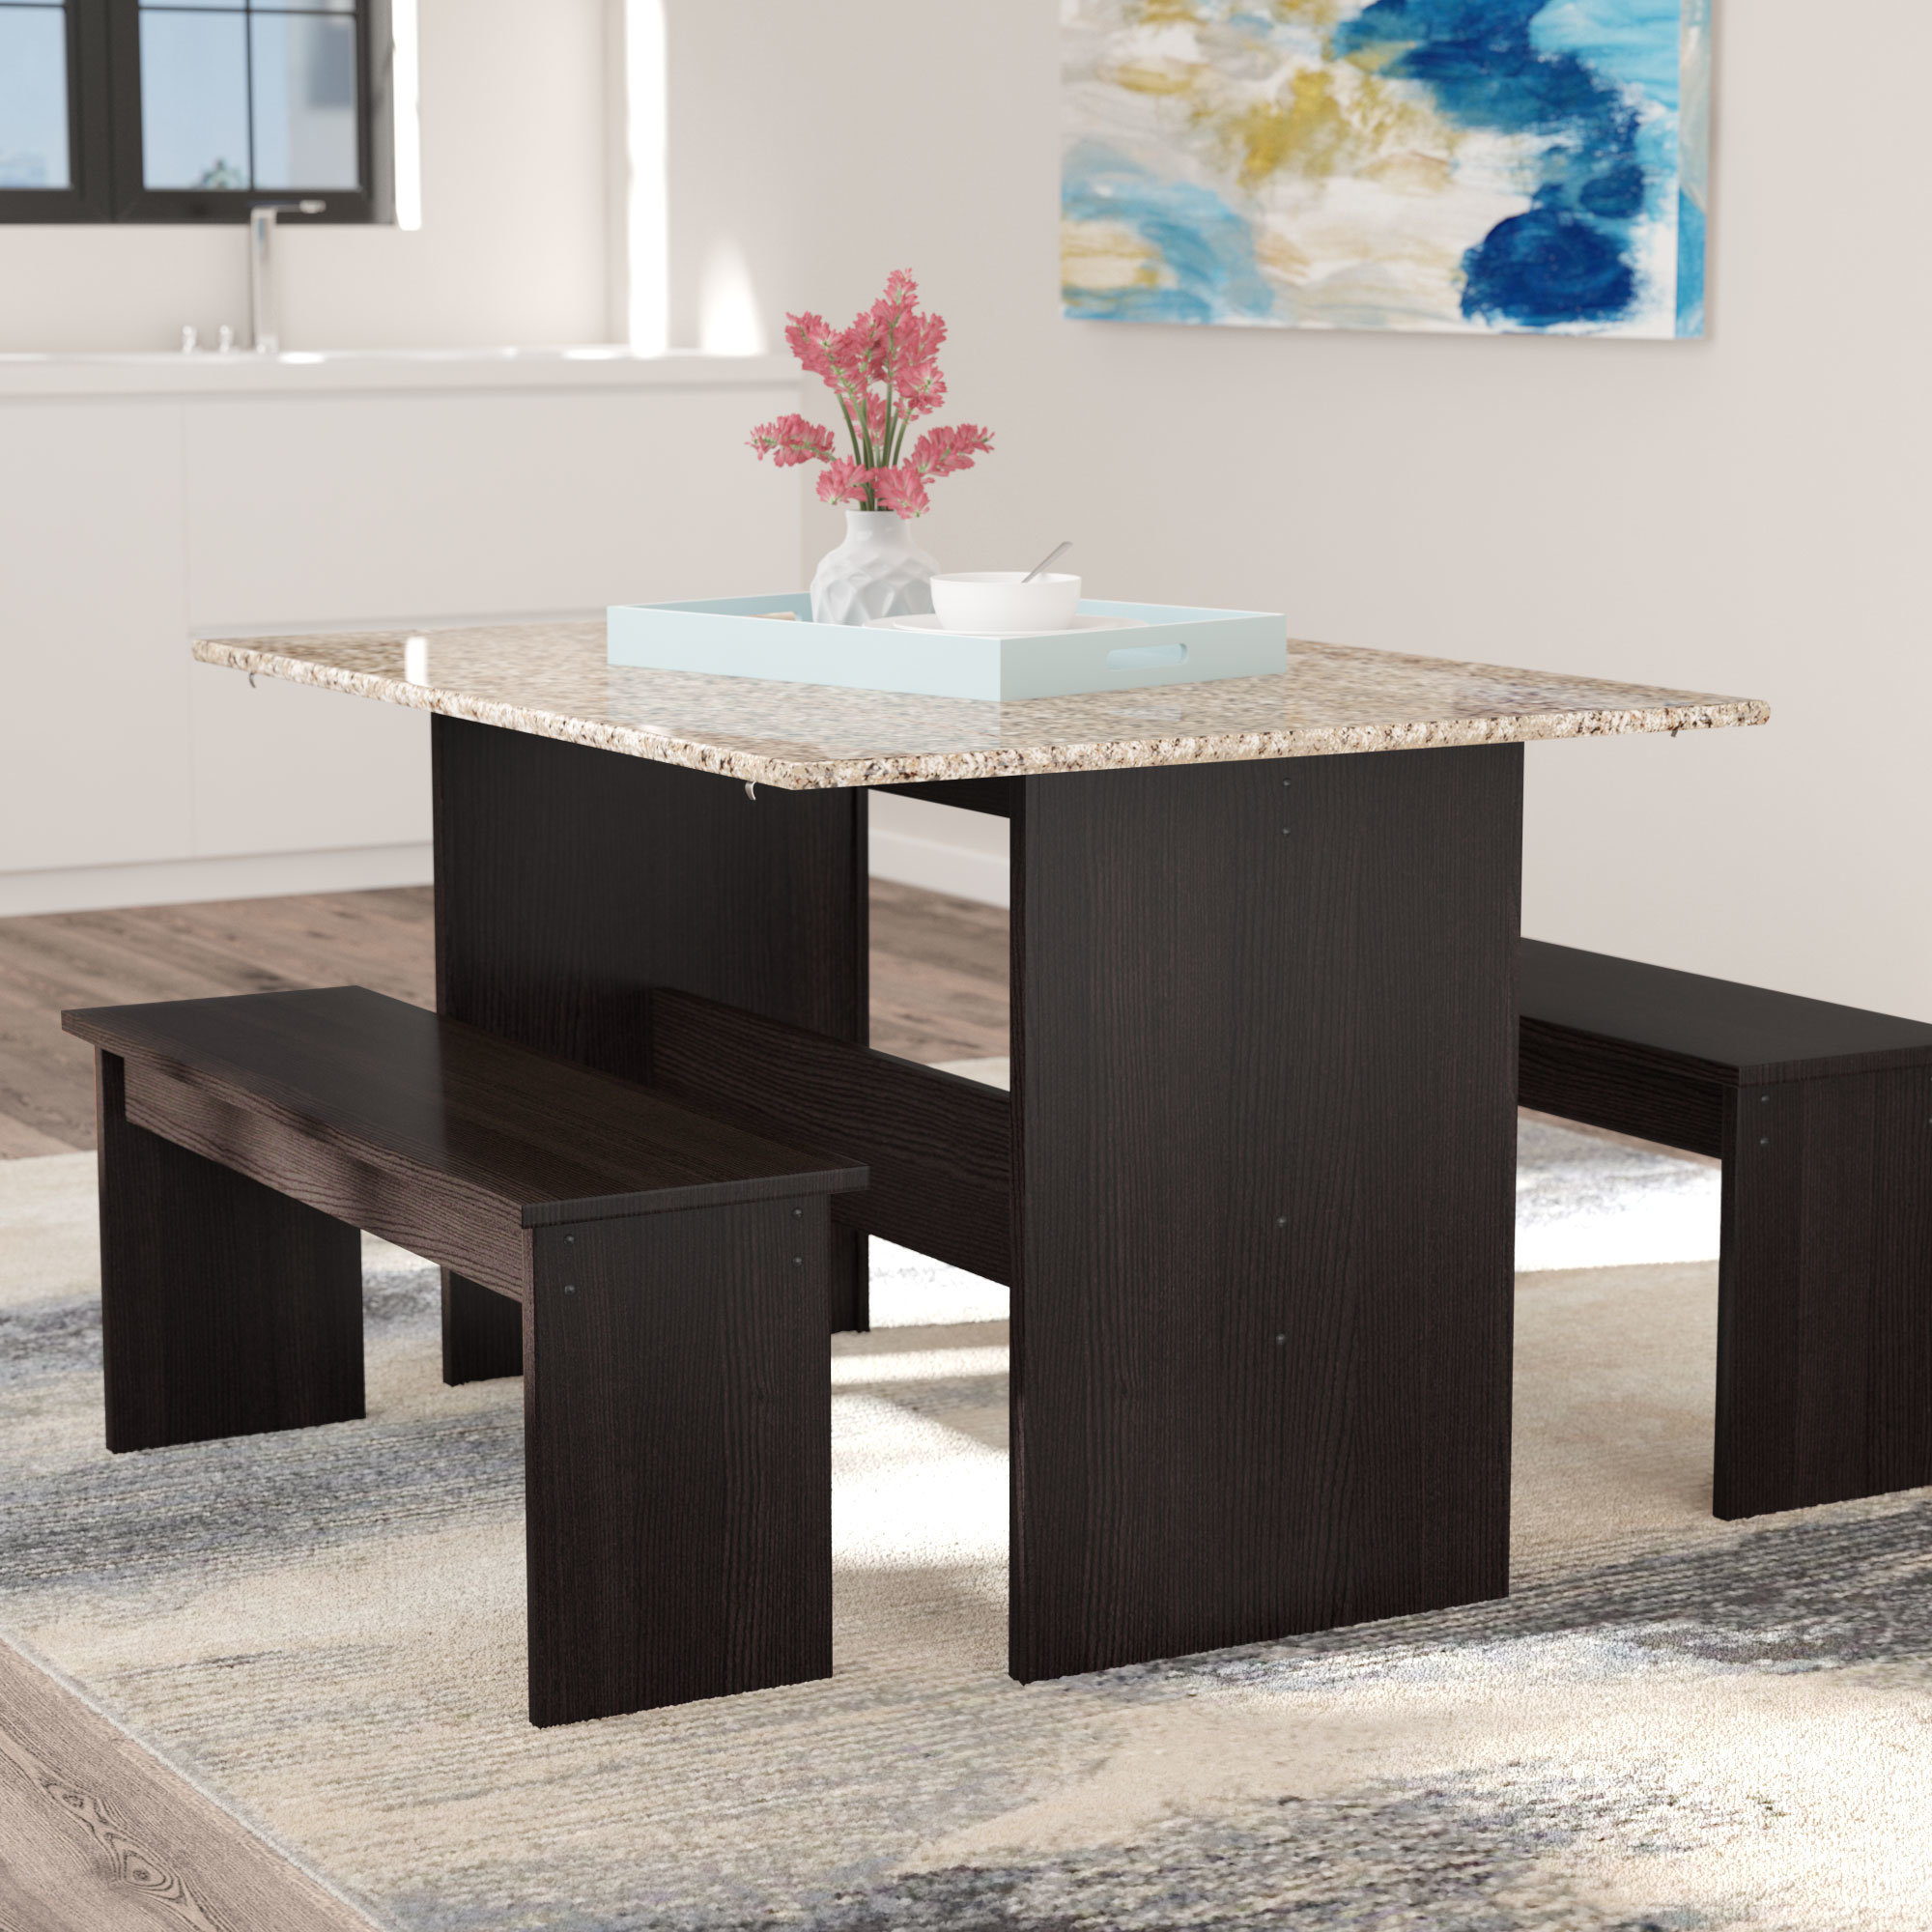 Widely Used Frida 3 Piece Dining Table Sets With Regard To Ryker 3 Piece Dining Set (View 20 of 20)